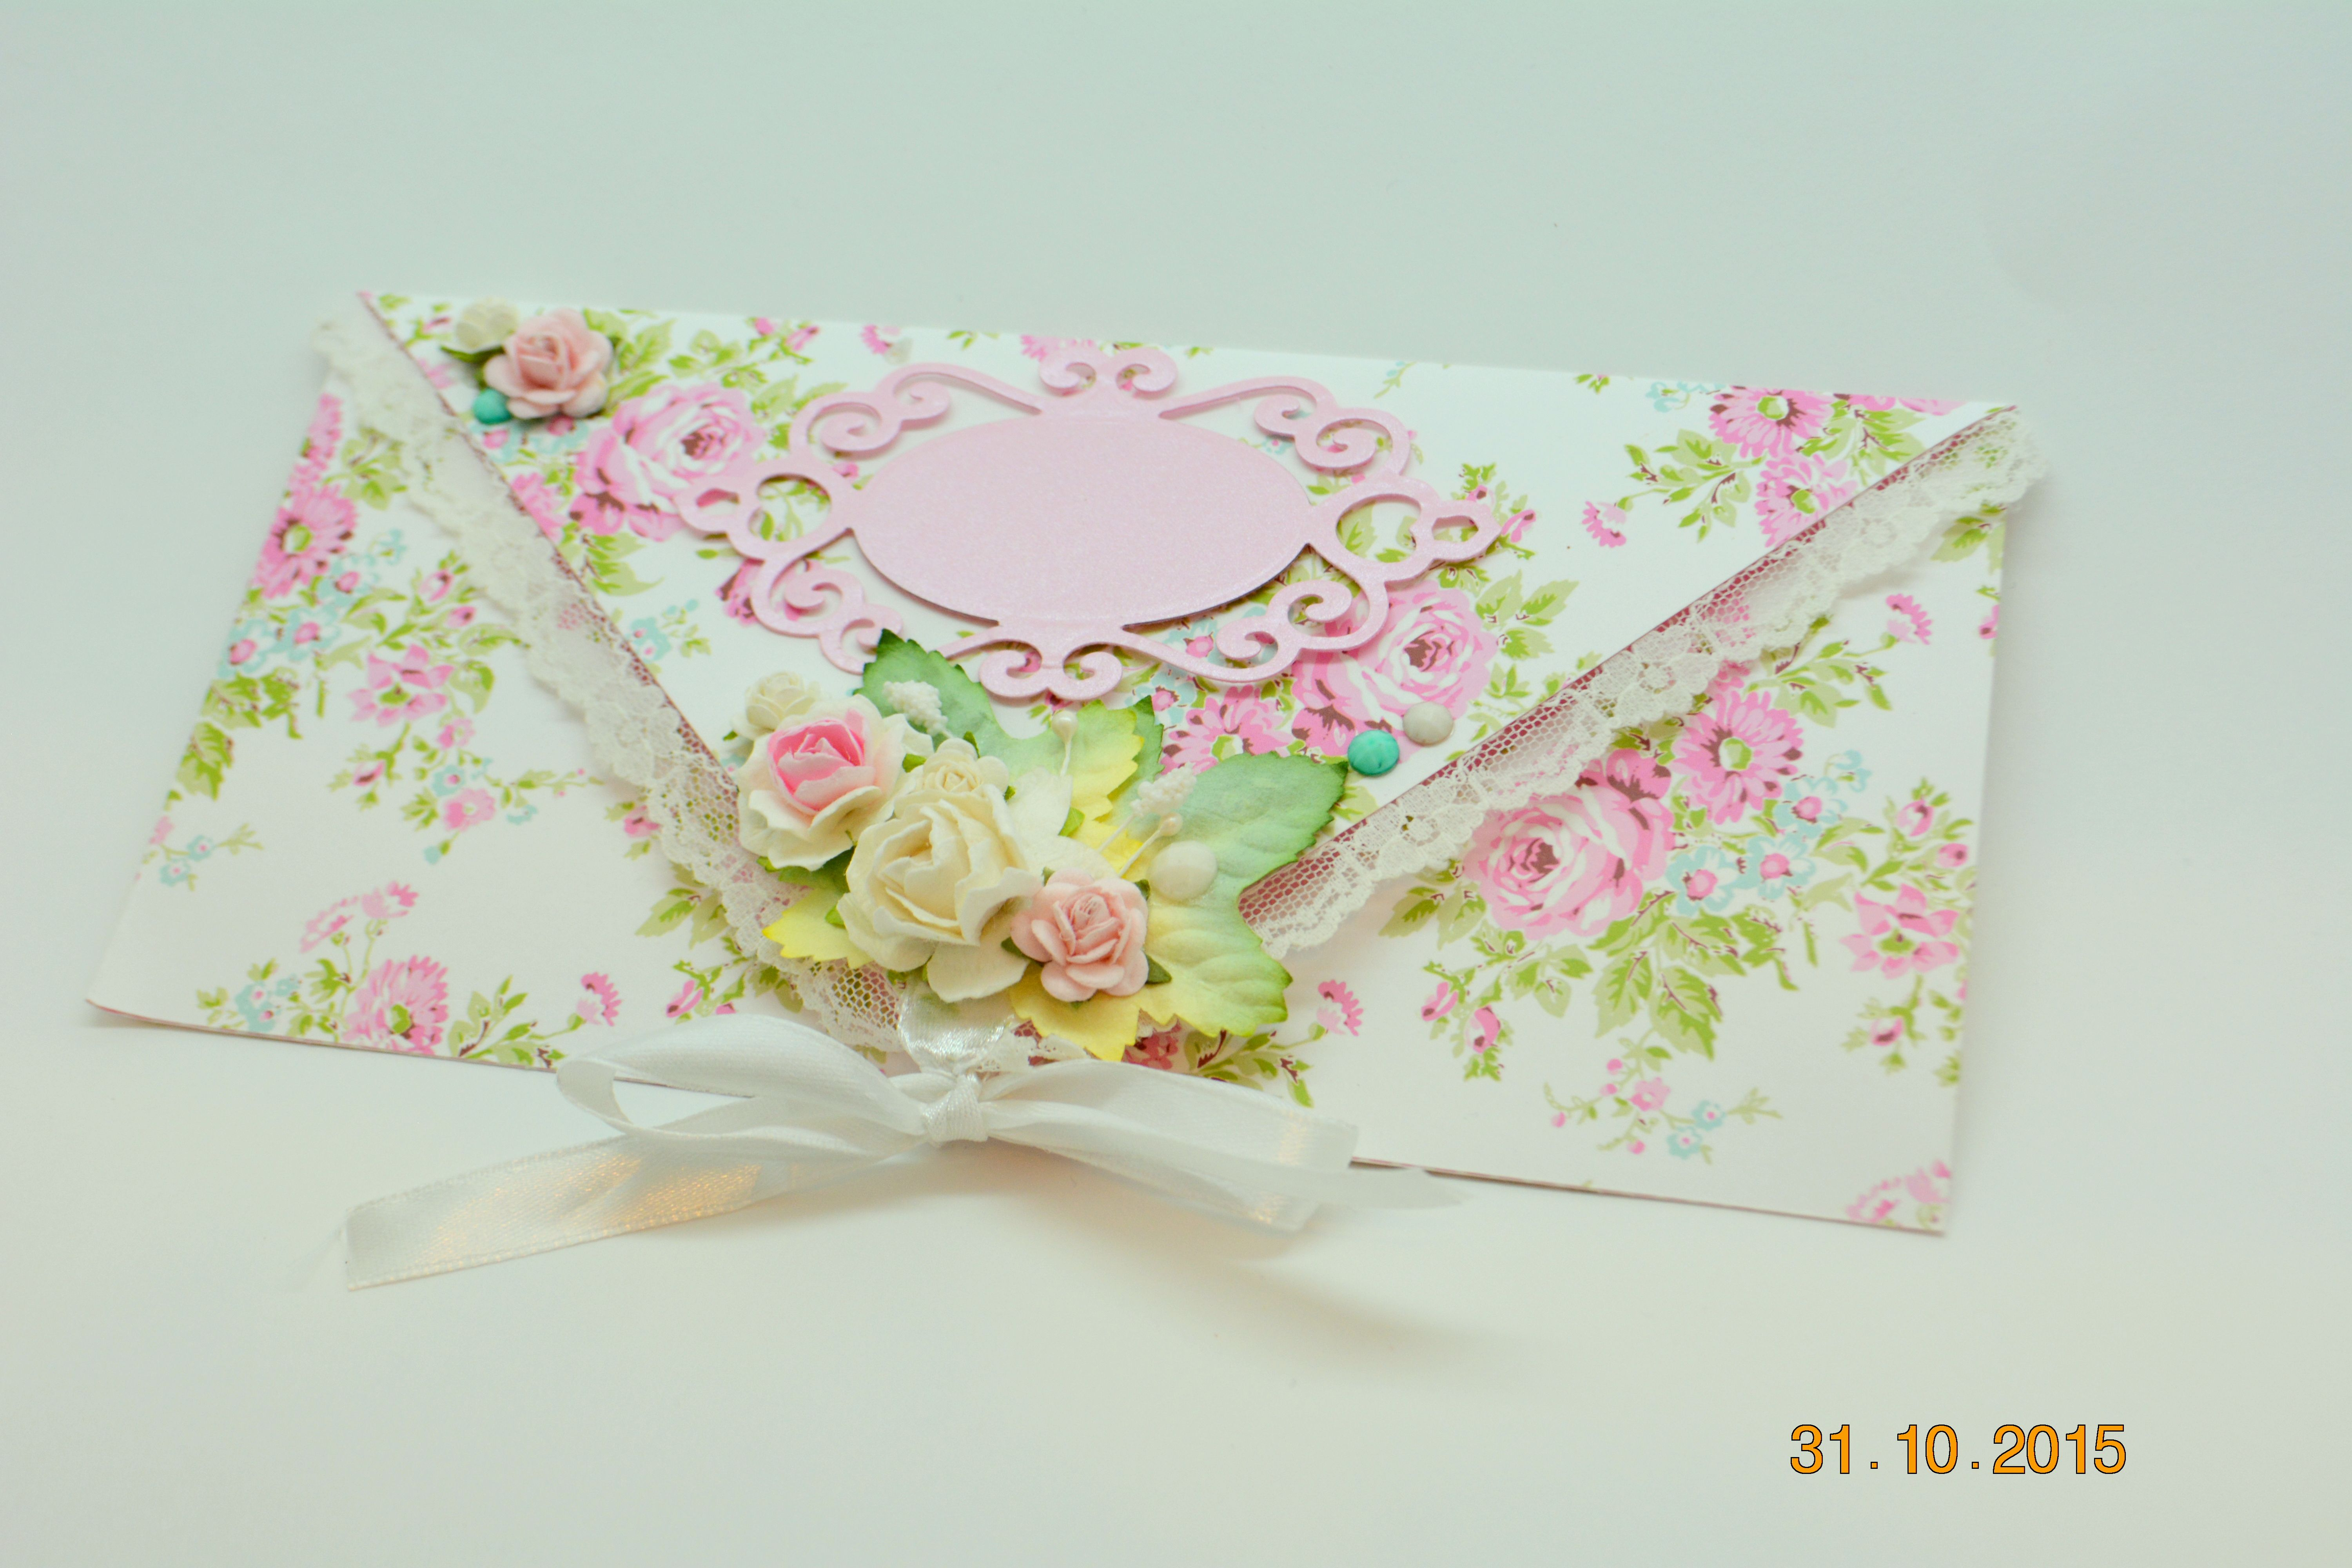 envelop gift wedding holiday